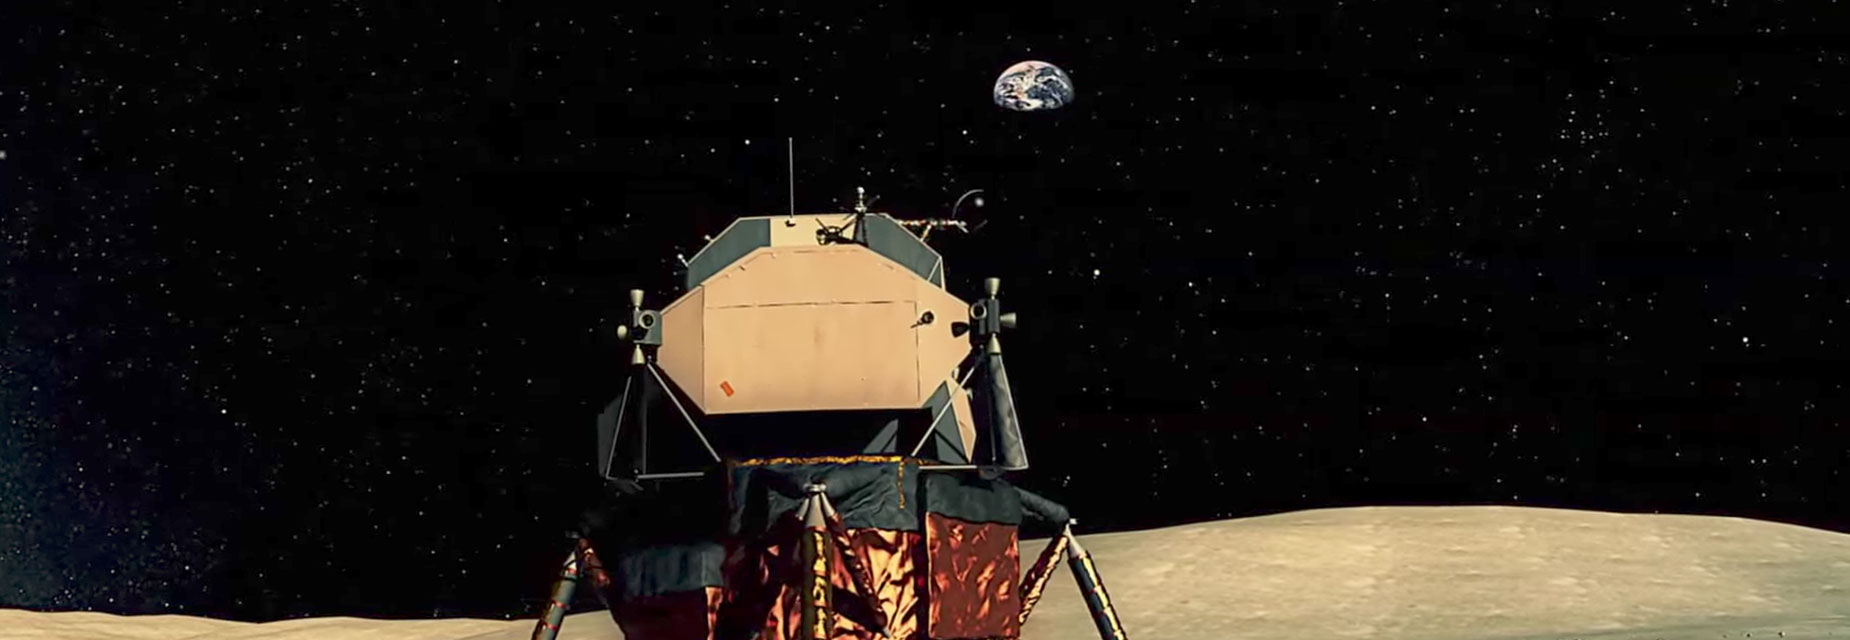 A computer generated image of the lunar lander spacecraft looking out from the surface of the moon towards the earth